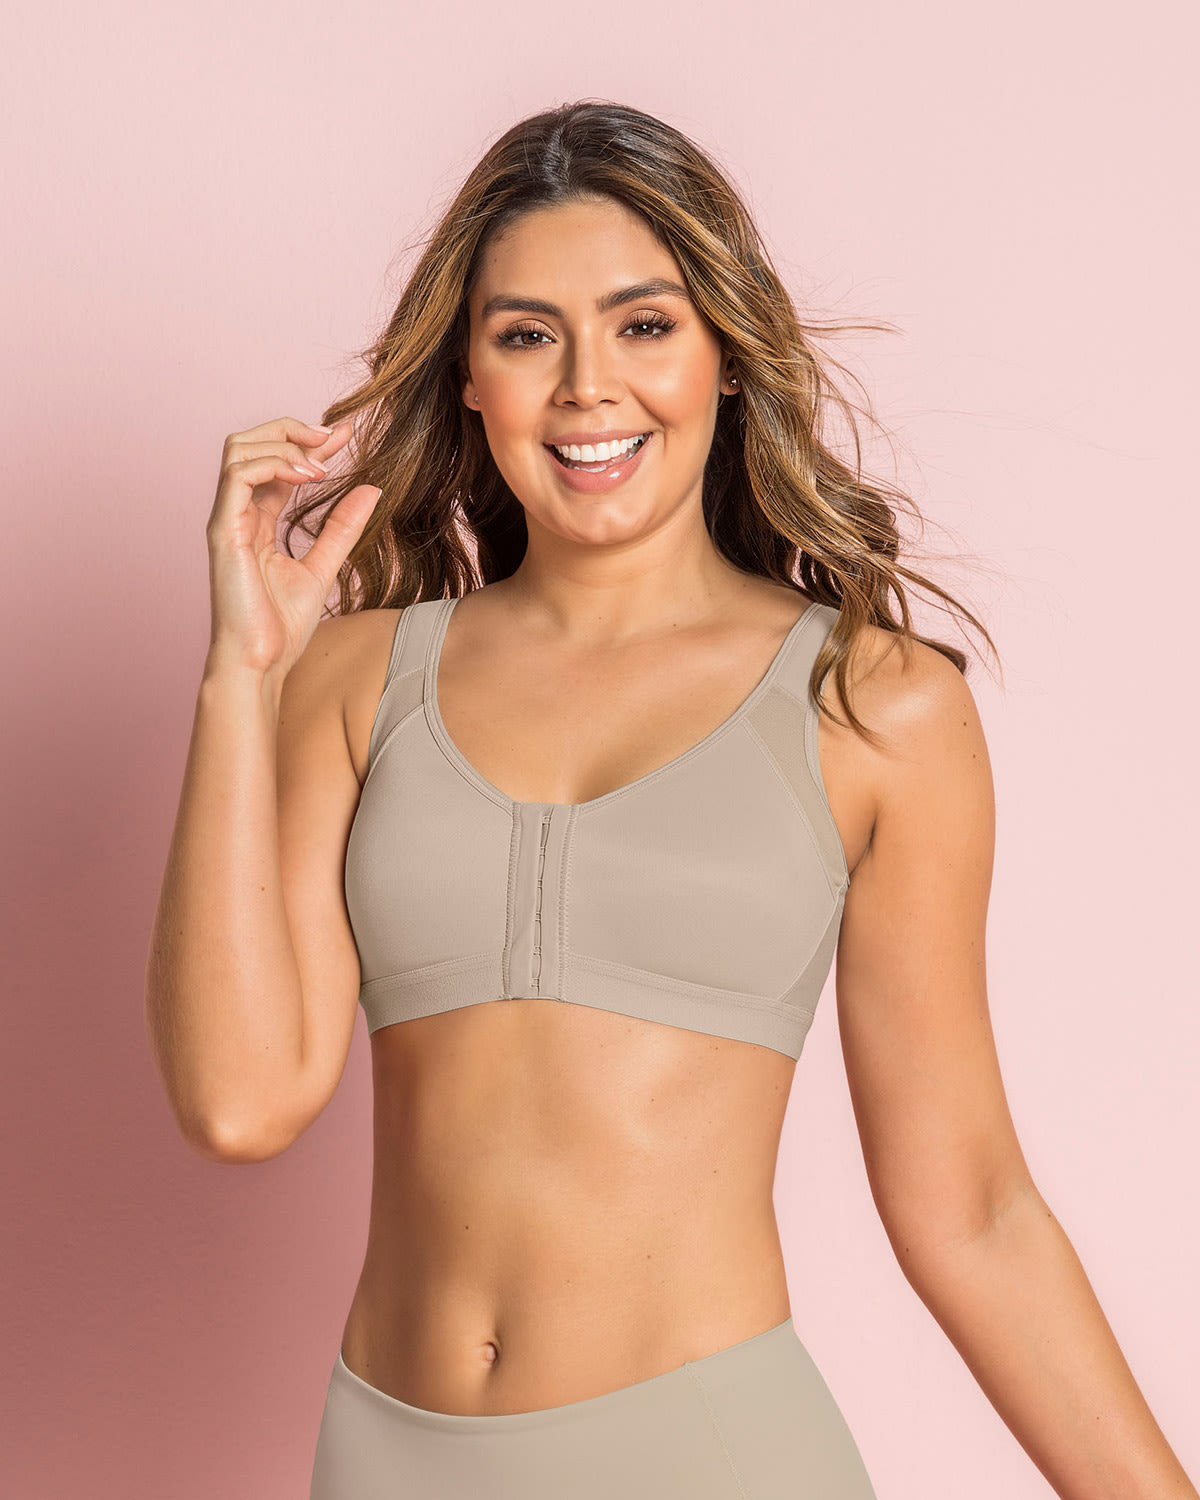 Post-Surgical Wireless Bra - Doctor Recommended